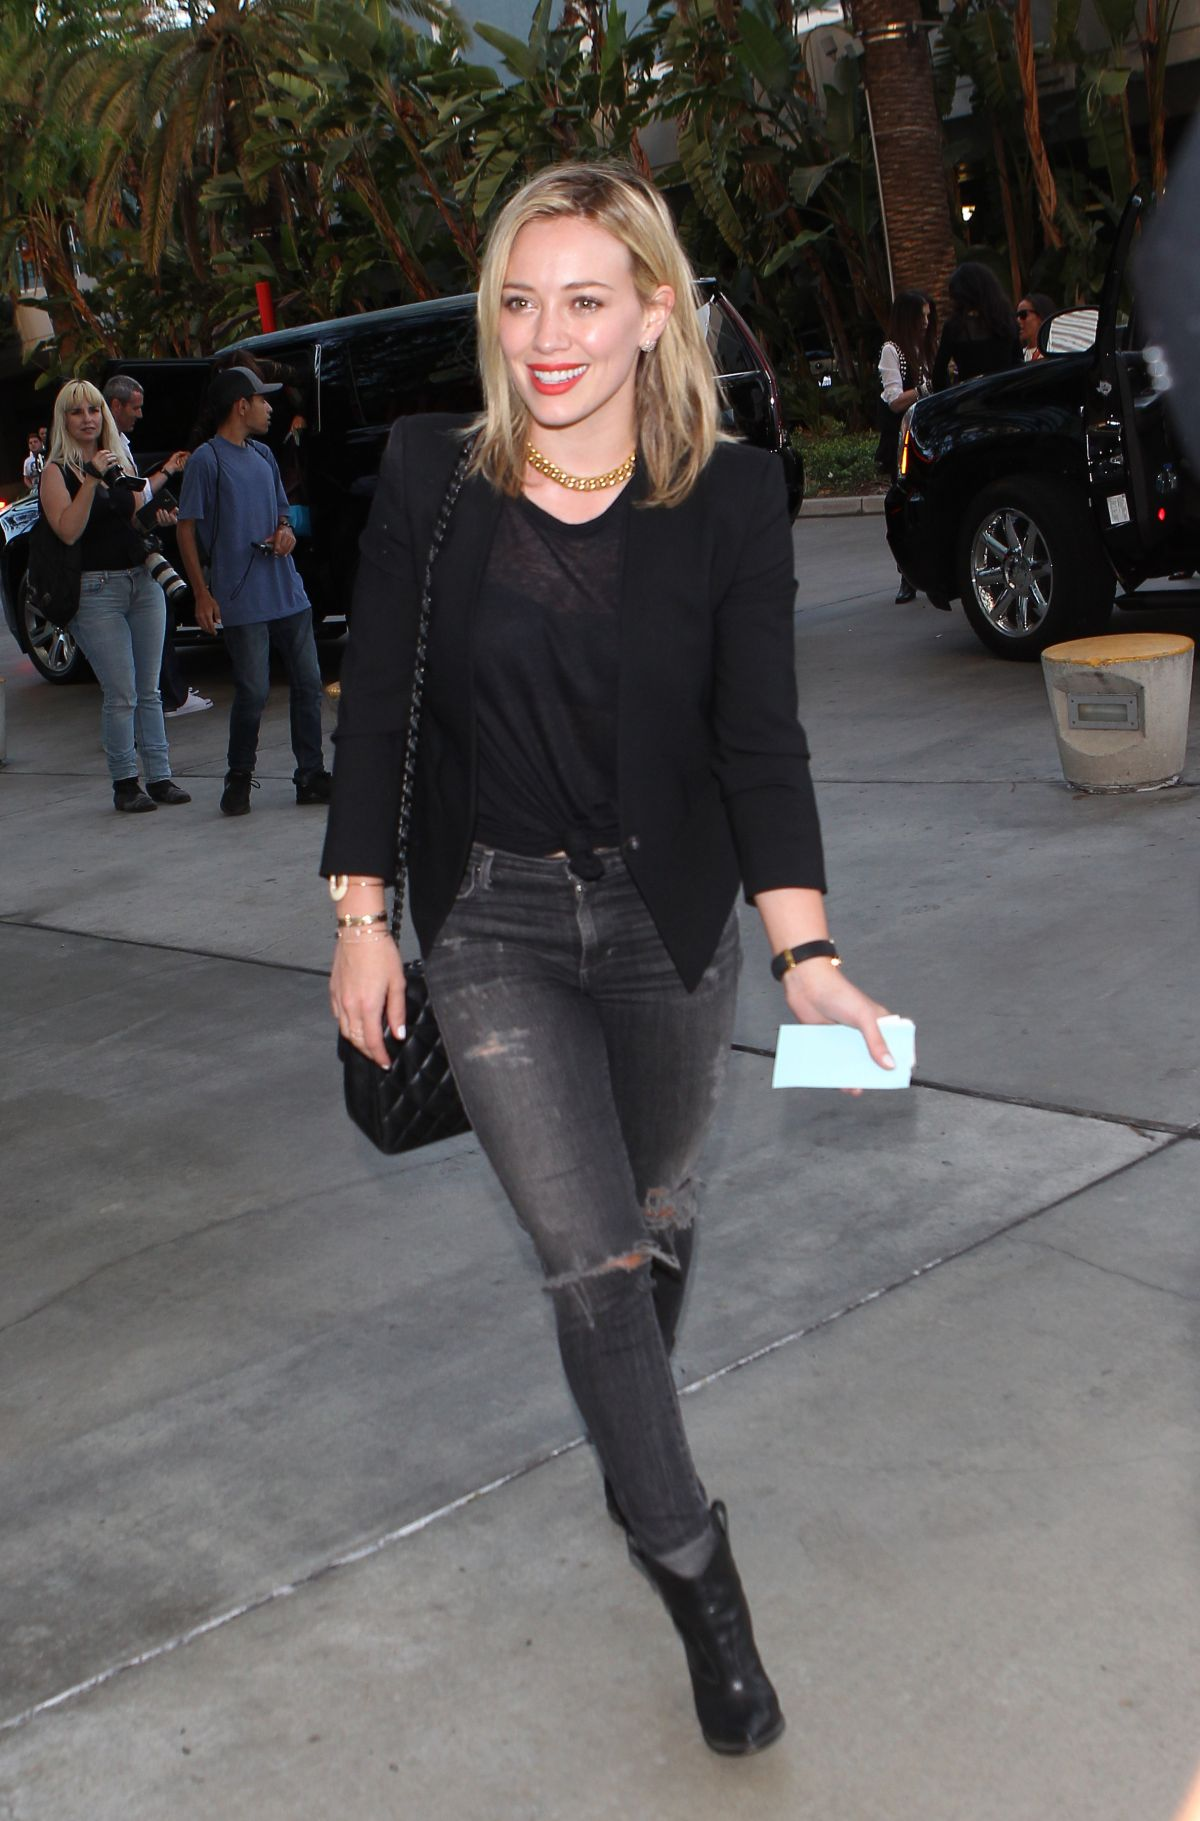 HILARY DUFF Arrives at Staples Center in Los Angeles